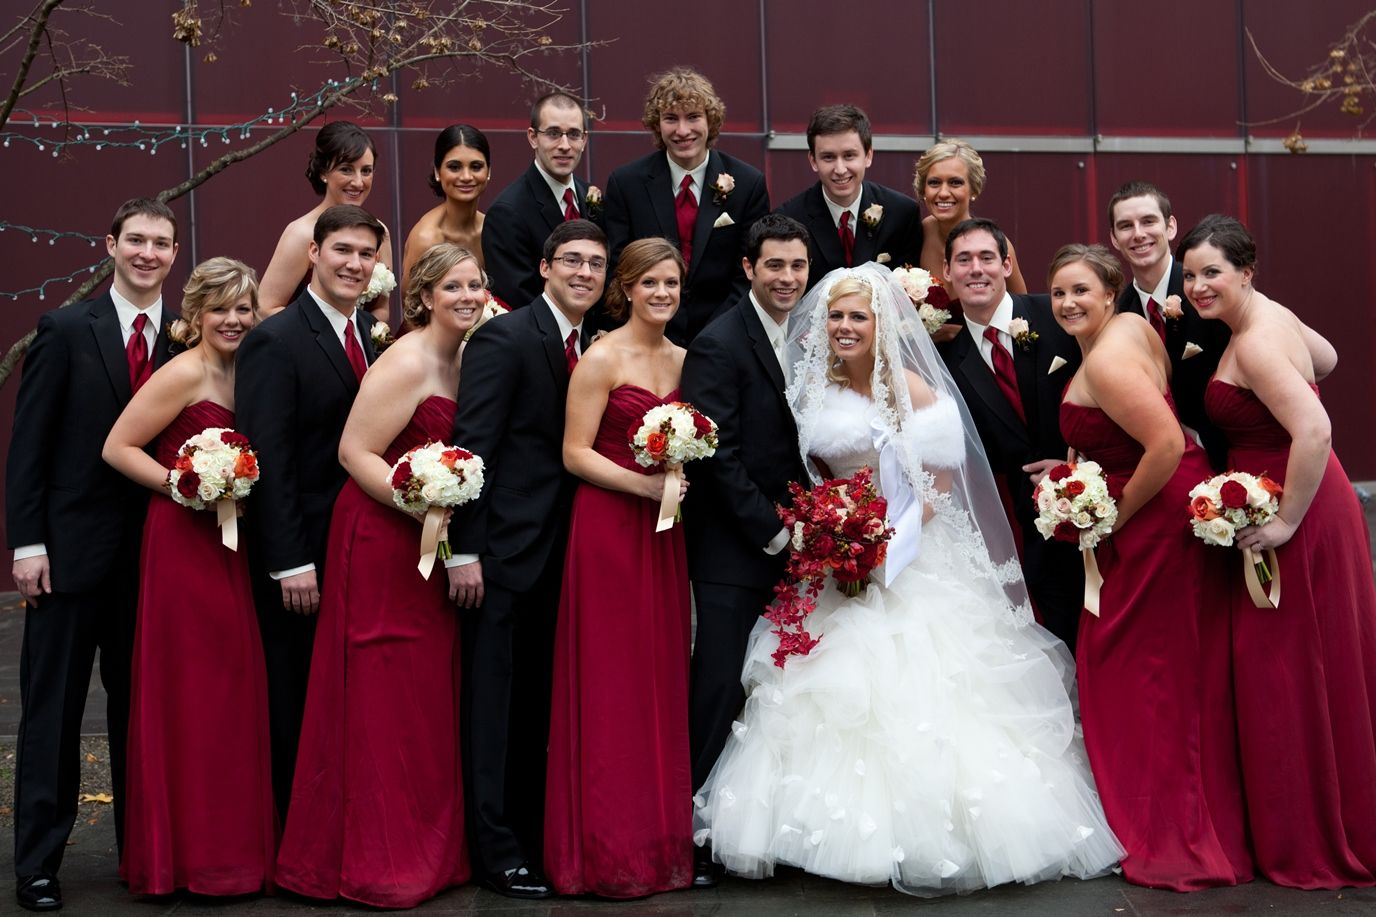 Burgundy and Champagne Wedding Colors with bouquets in